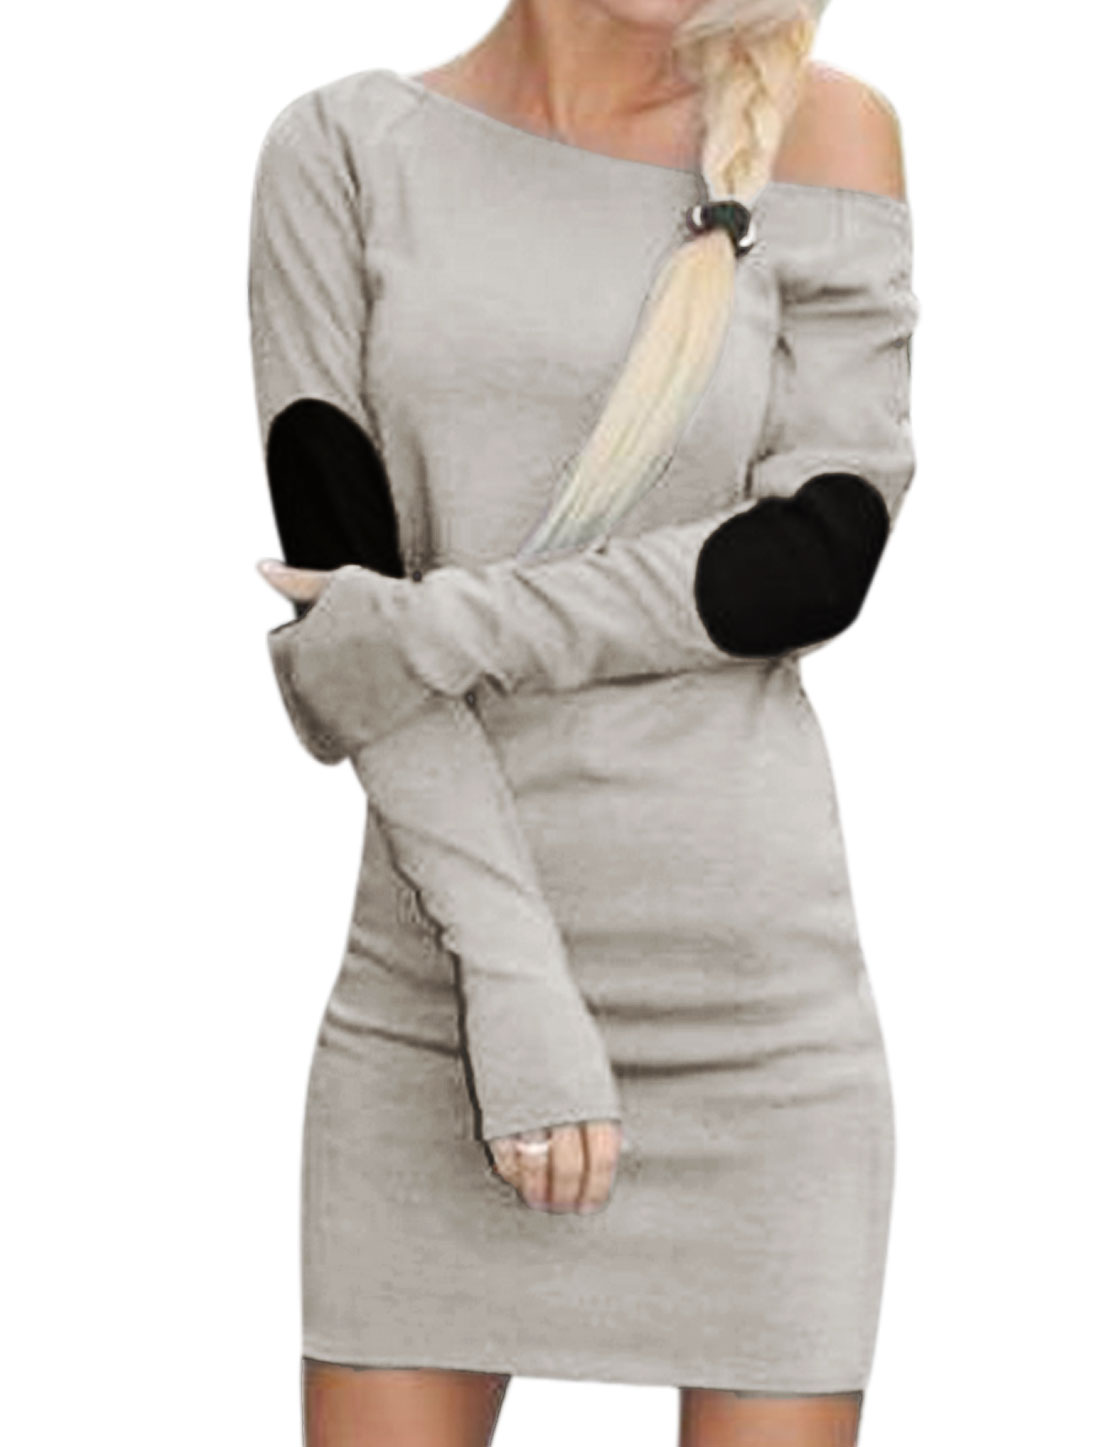 Lady Boat Neck Long Sleeves Elbow Patch Sheath Dress Gray S